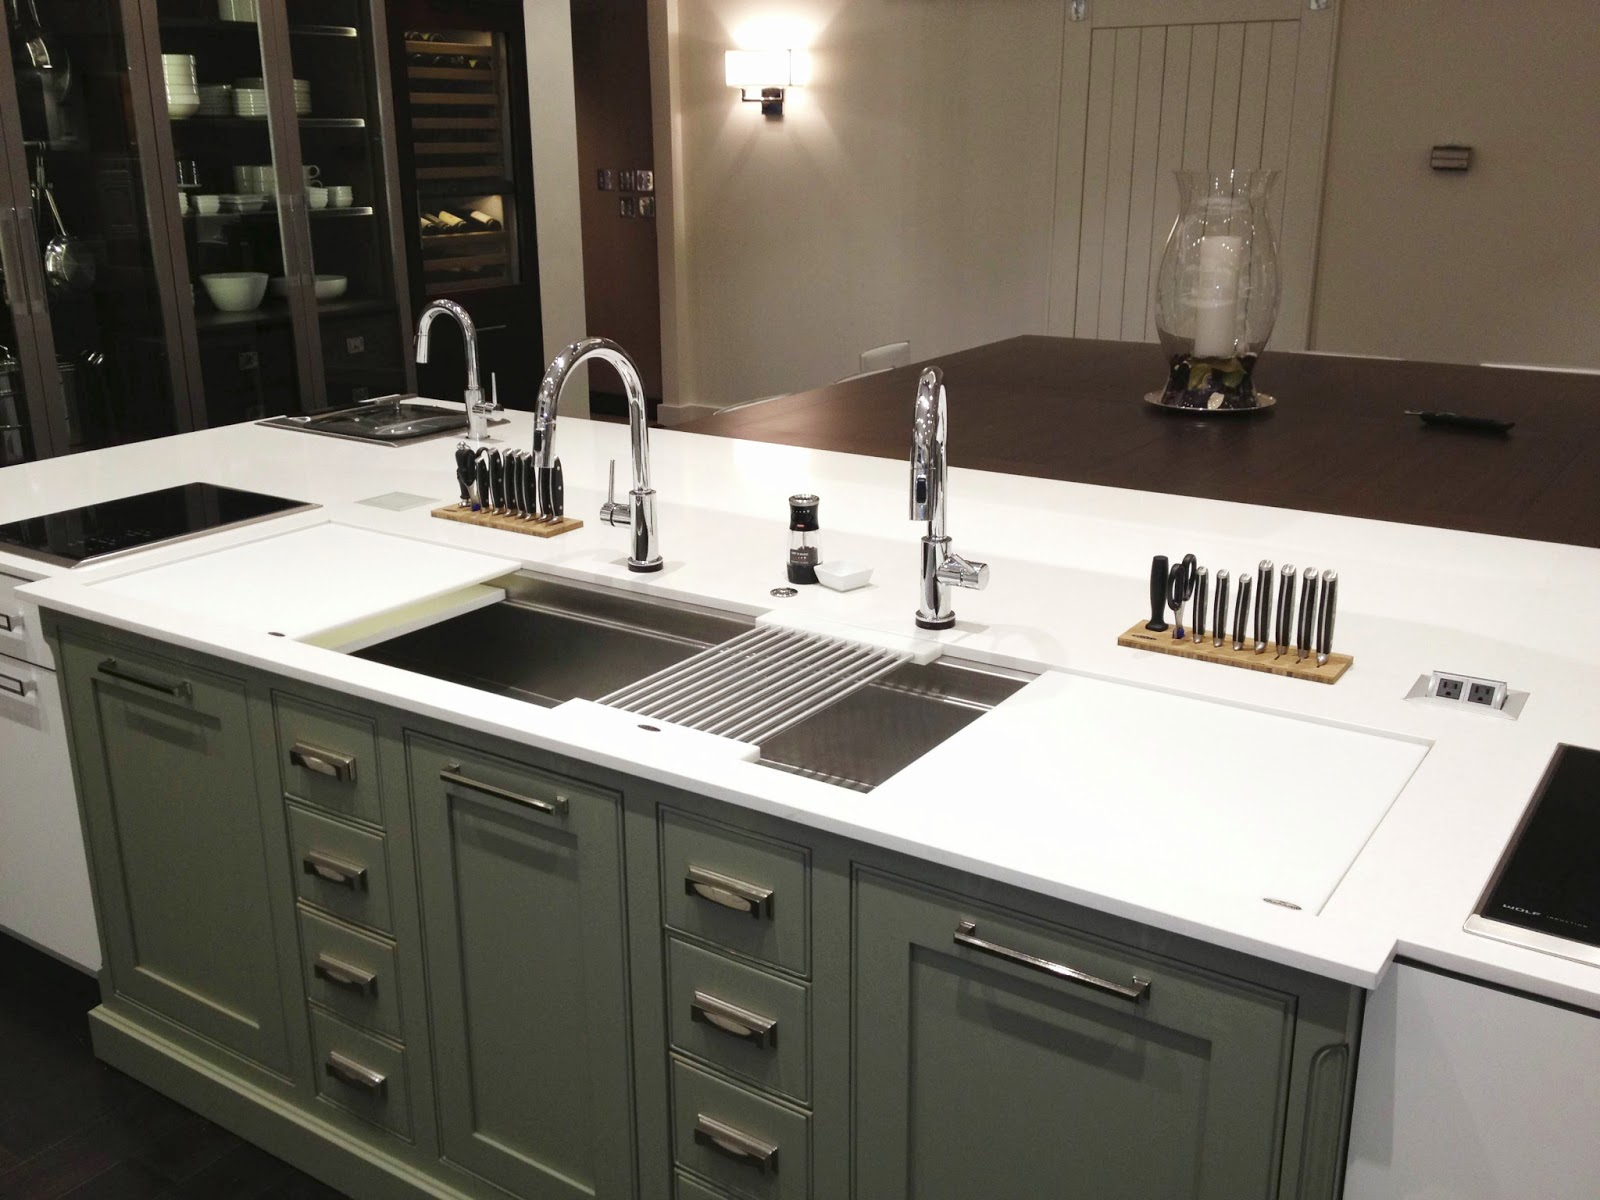 Good Friday Kitchen Find | Galley Sink